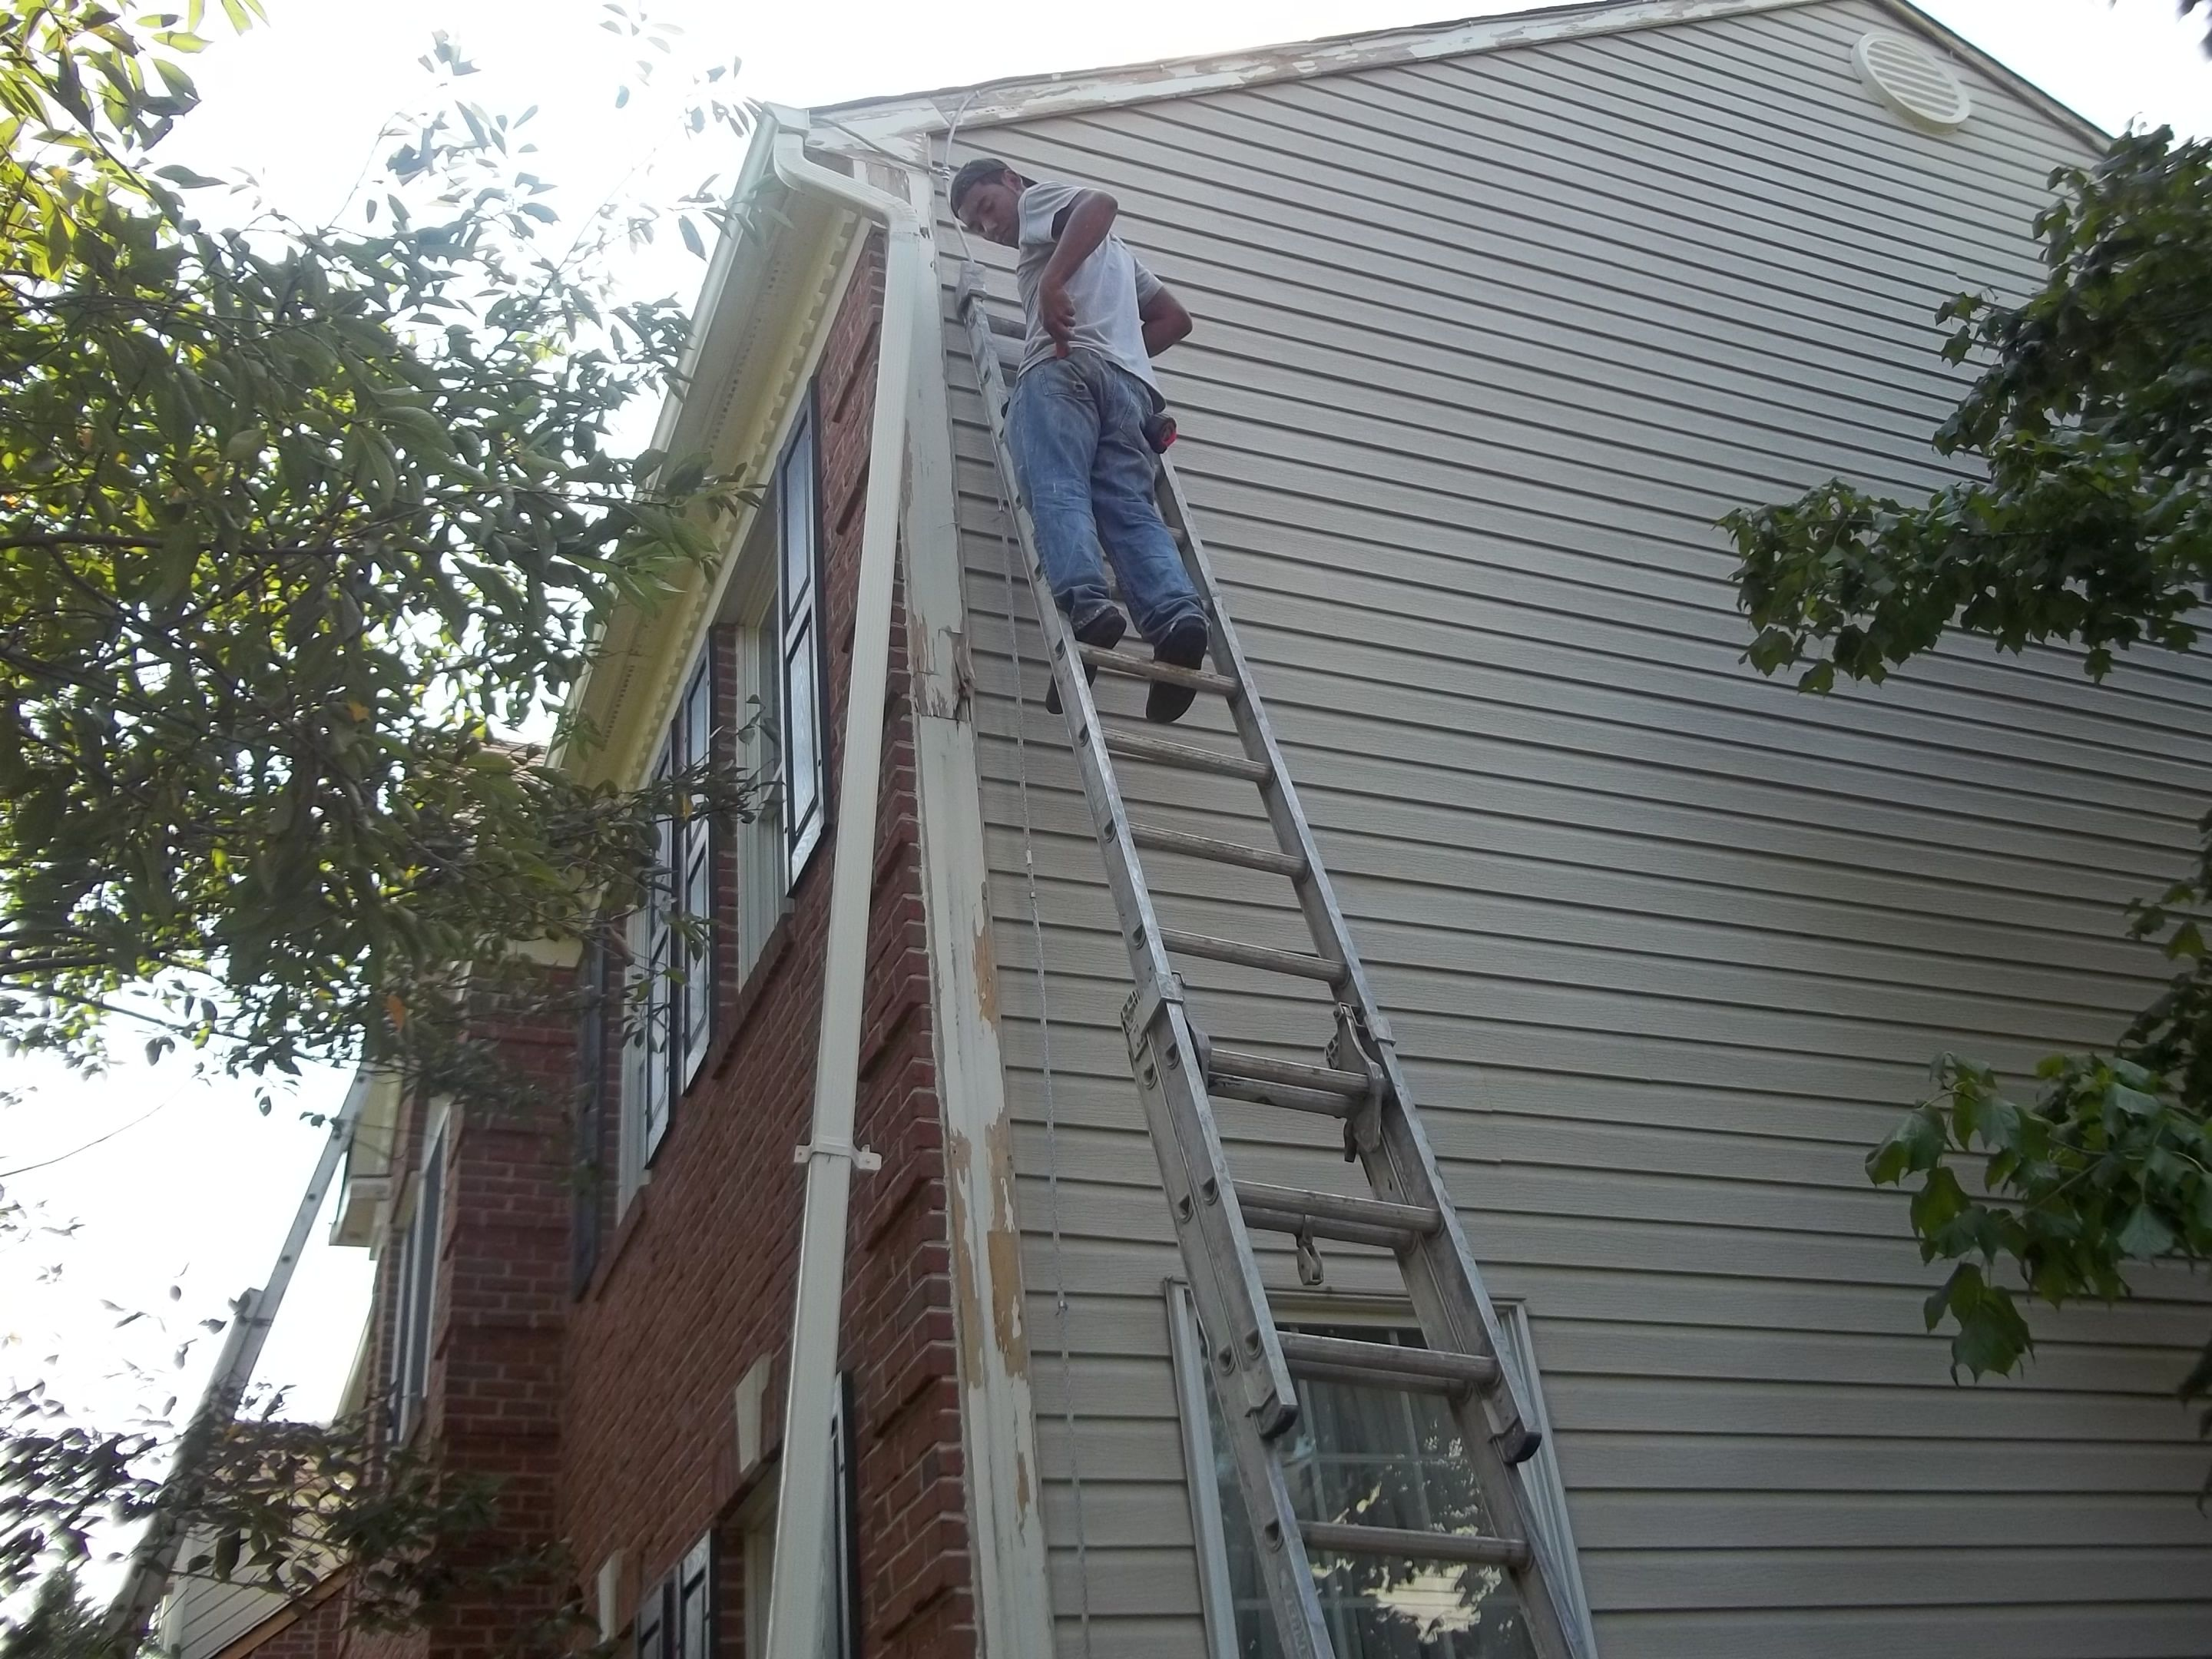 Removal And Replacement Of Rake Board, Bracket, And Corner Board Wood Trim  Sections. Wood TrimExterior